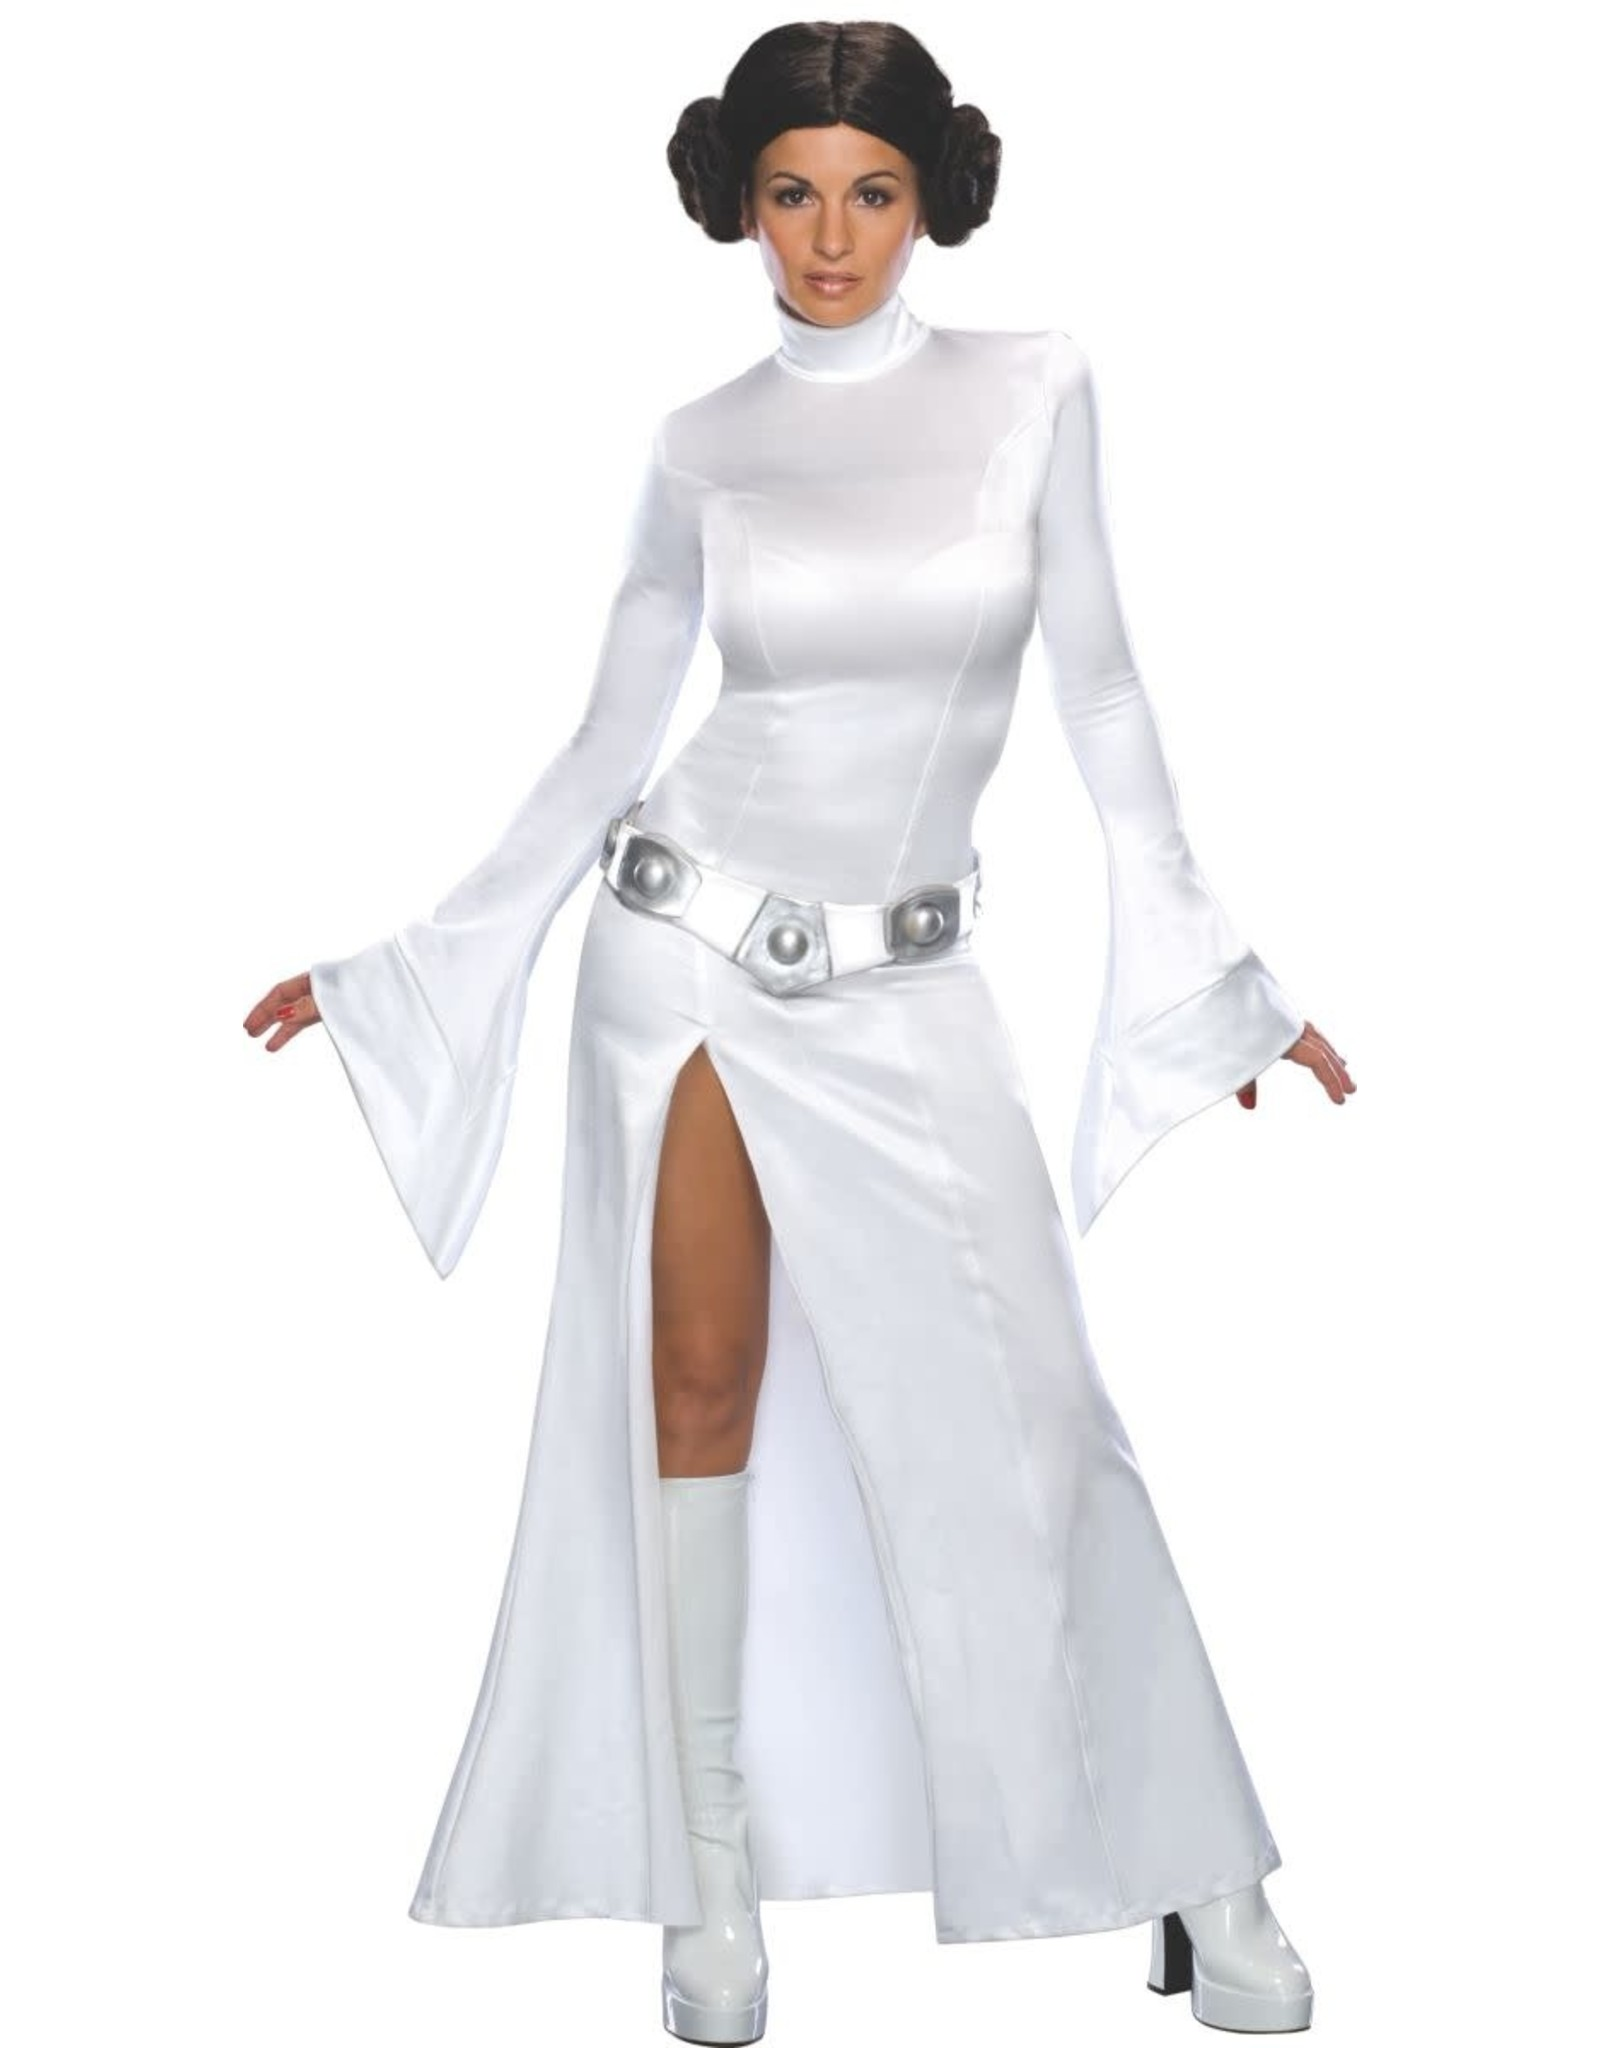 Secret Wishes Princess Leia Dress and Wig